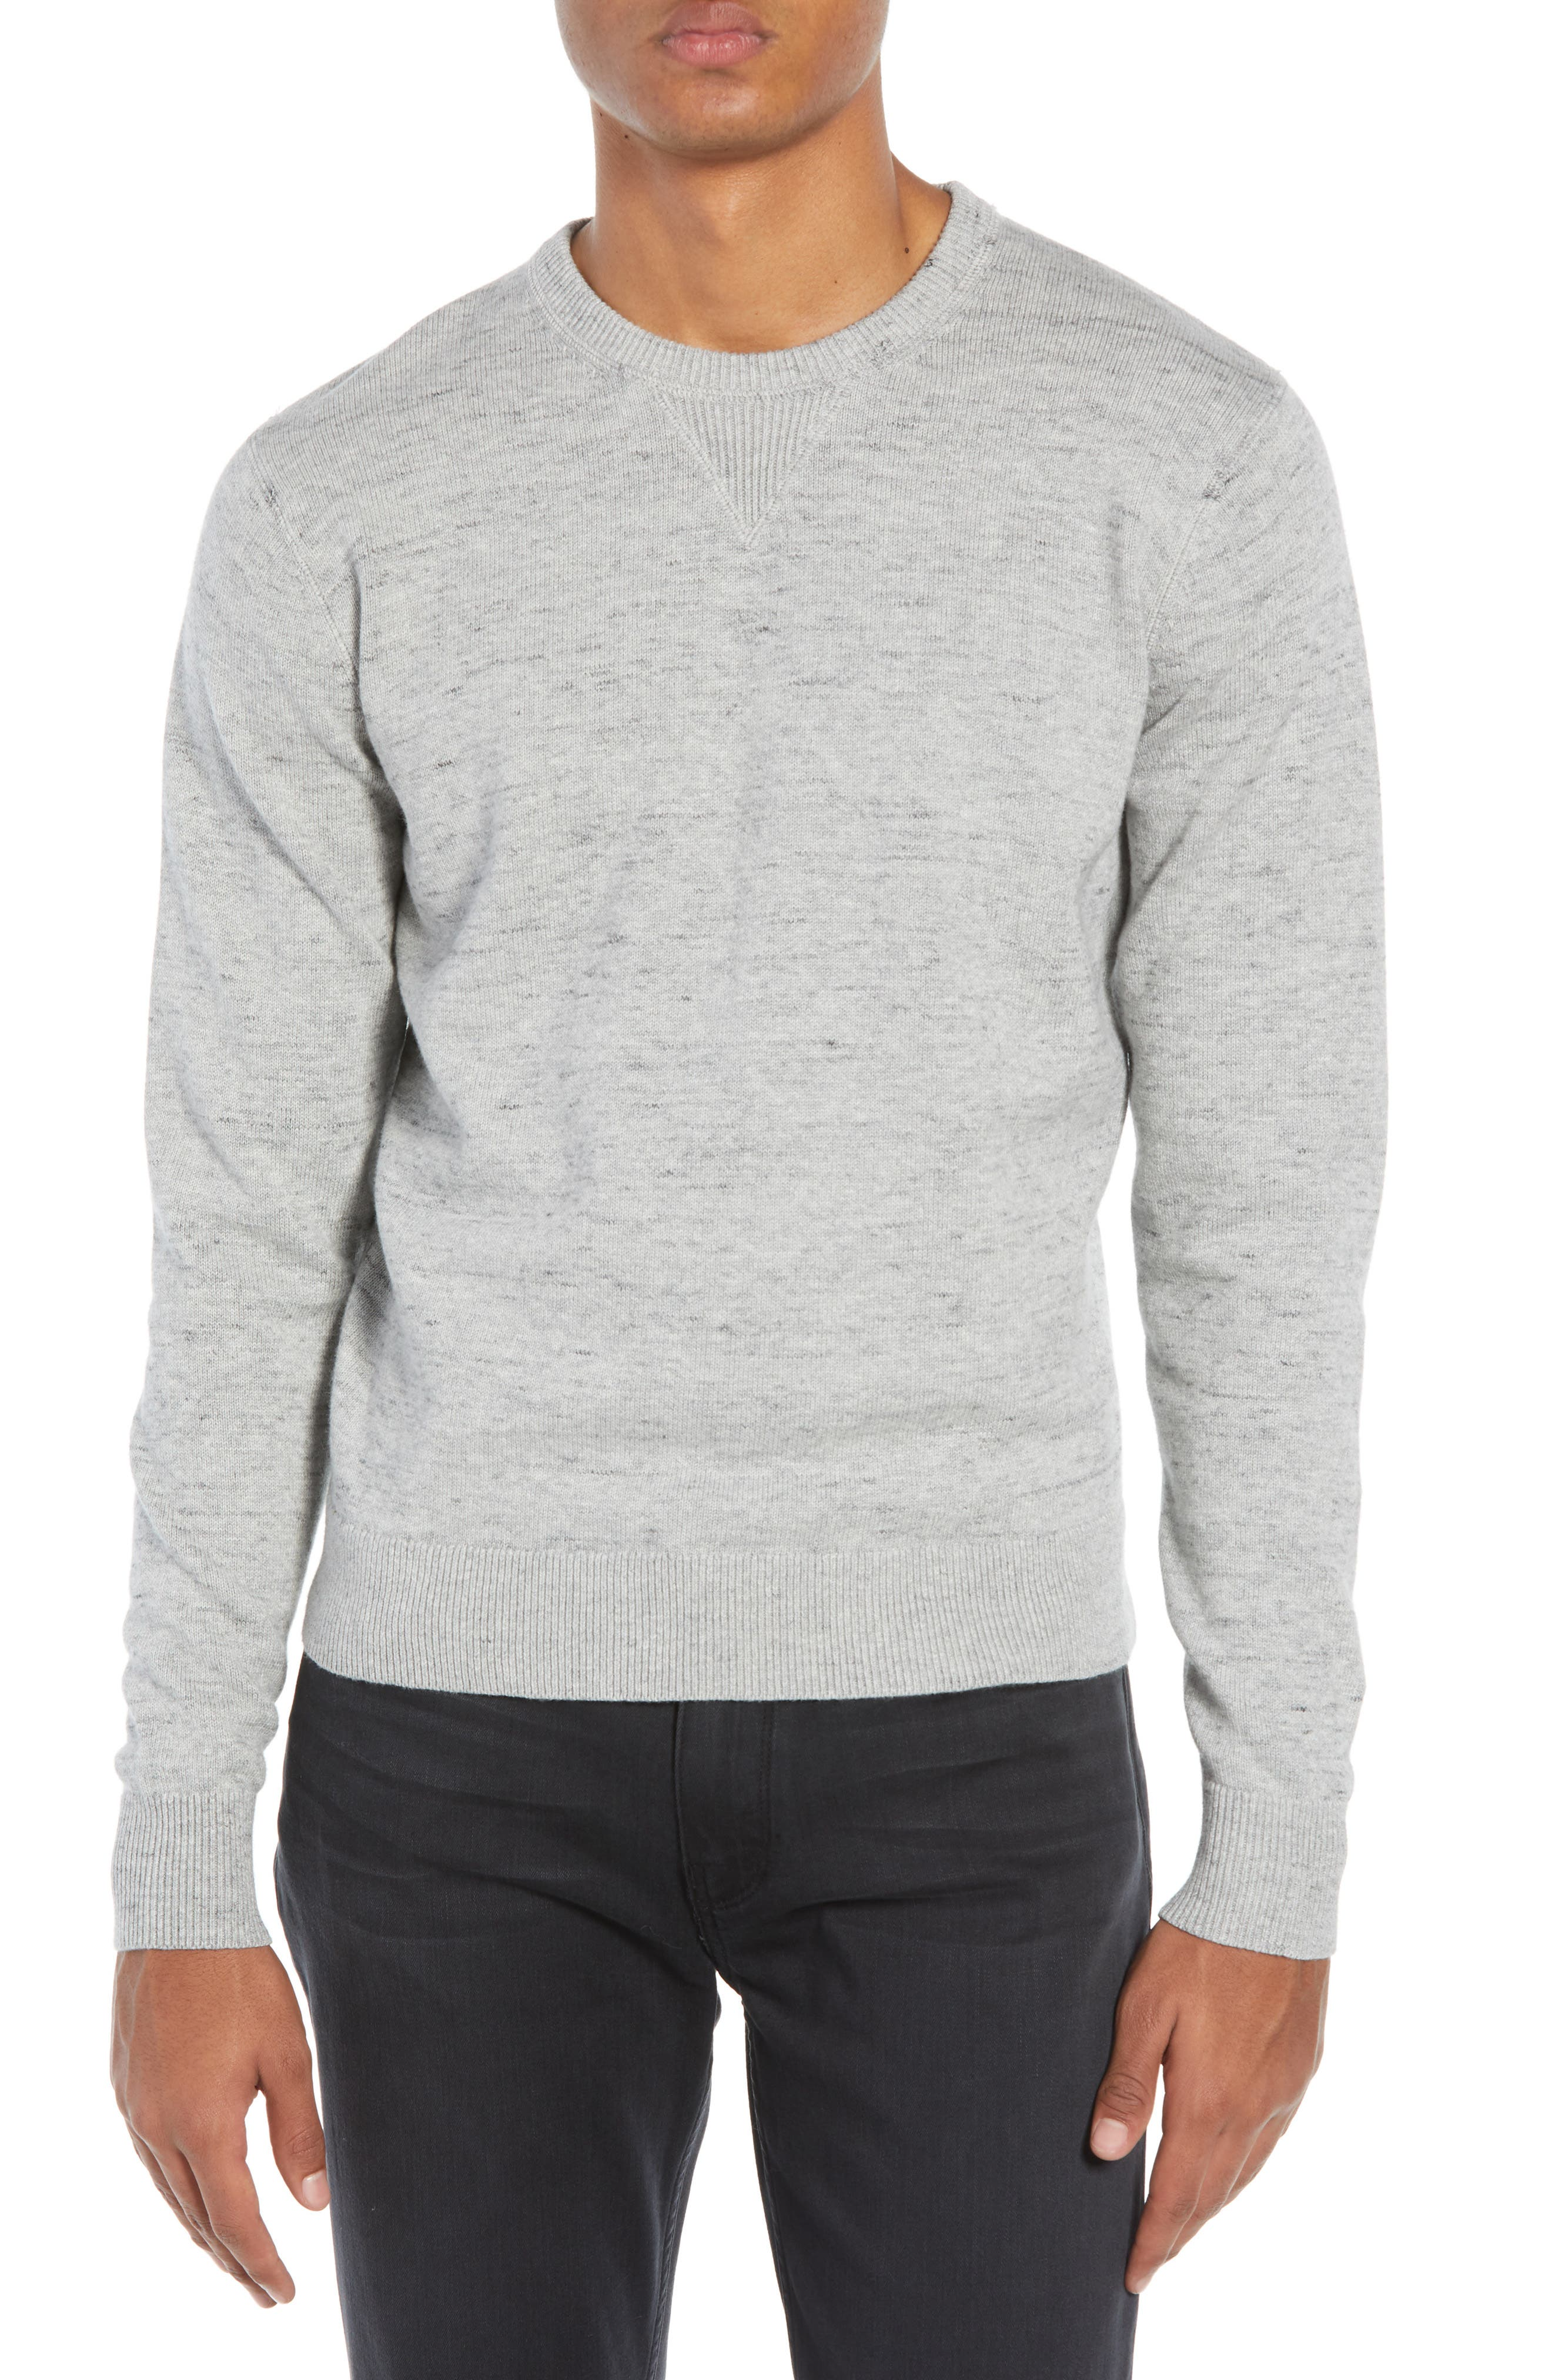 TODD SNYDER Regular Fit Space Dye Sweater in Grey